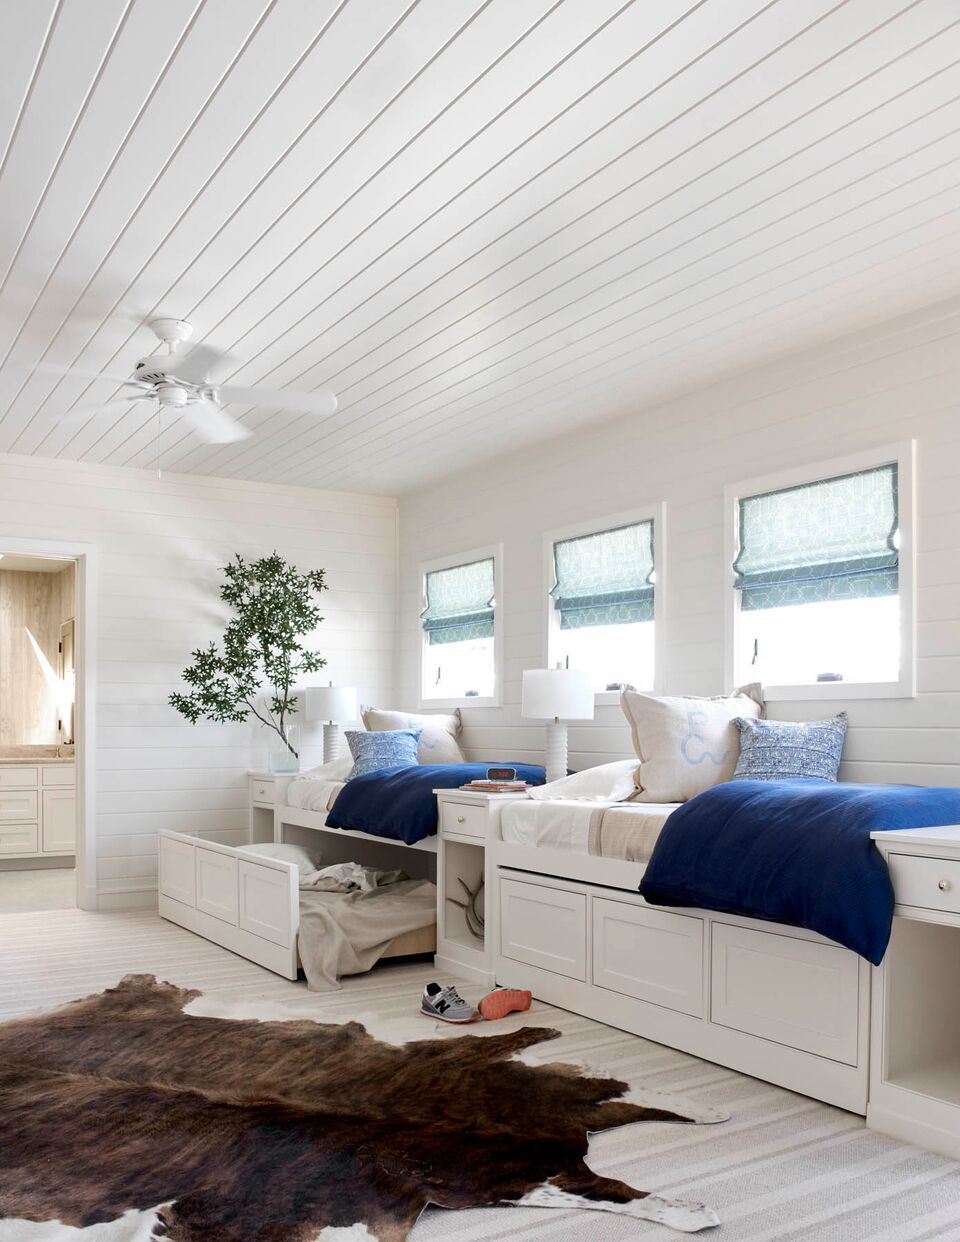 Bunk House For Kids Love The Shiplap Ceilings Design By Collins